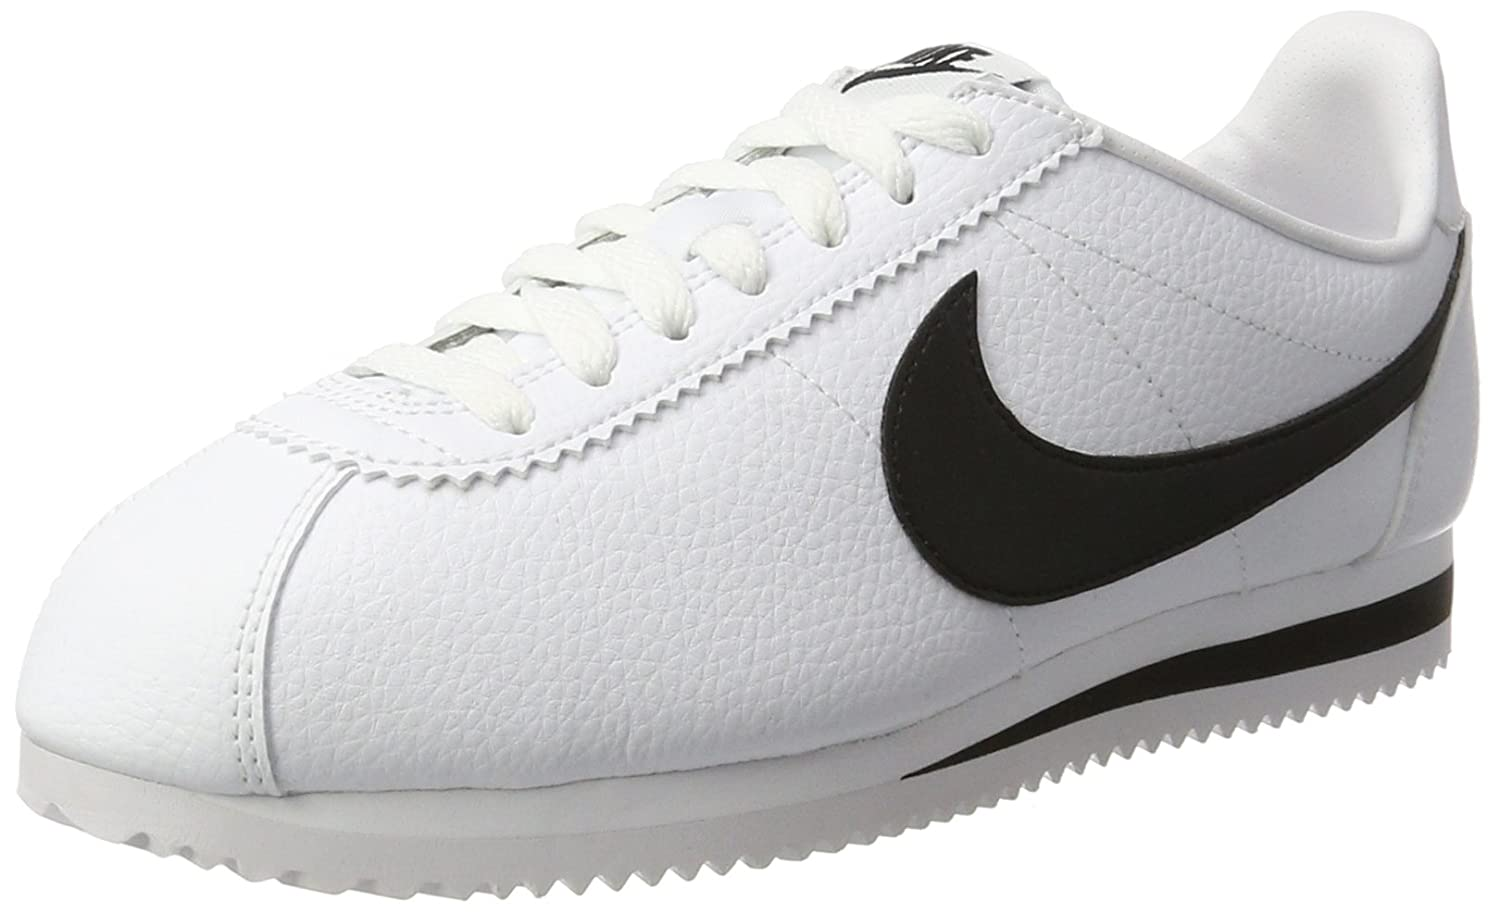 Nike Men's's Zapatillas Classic Cortez Leather WhiteBlack Running Shoes